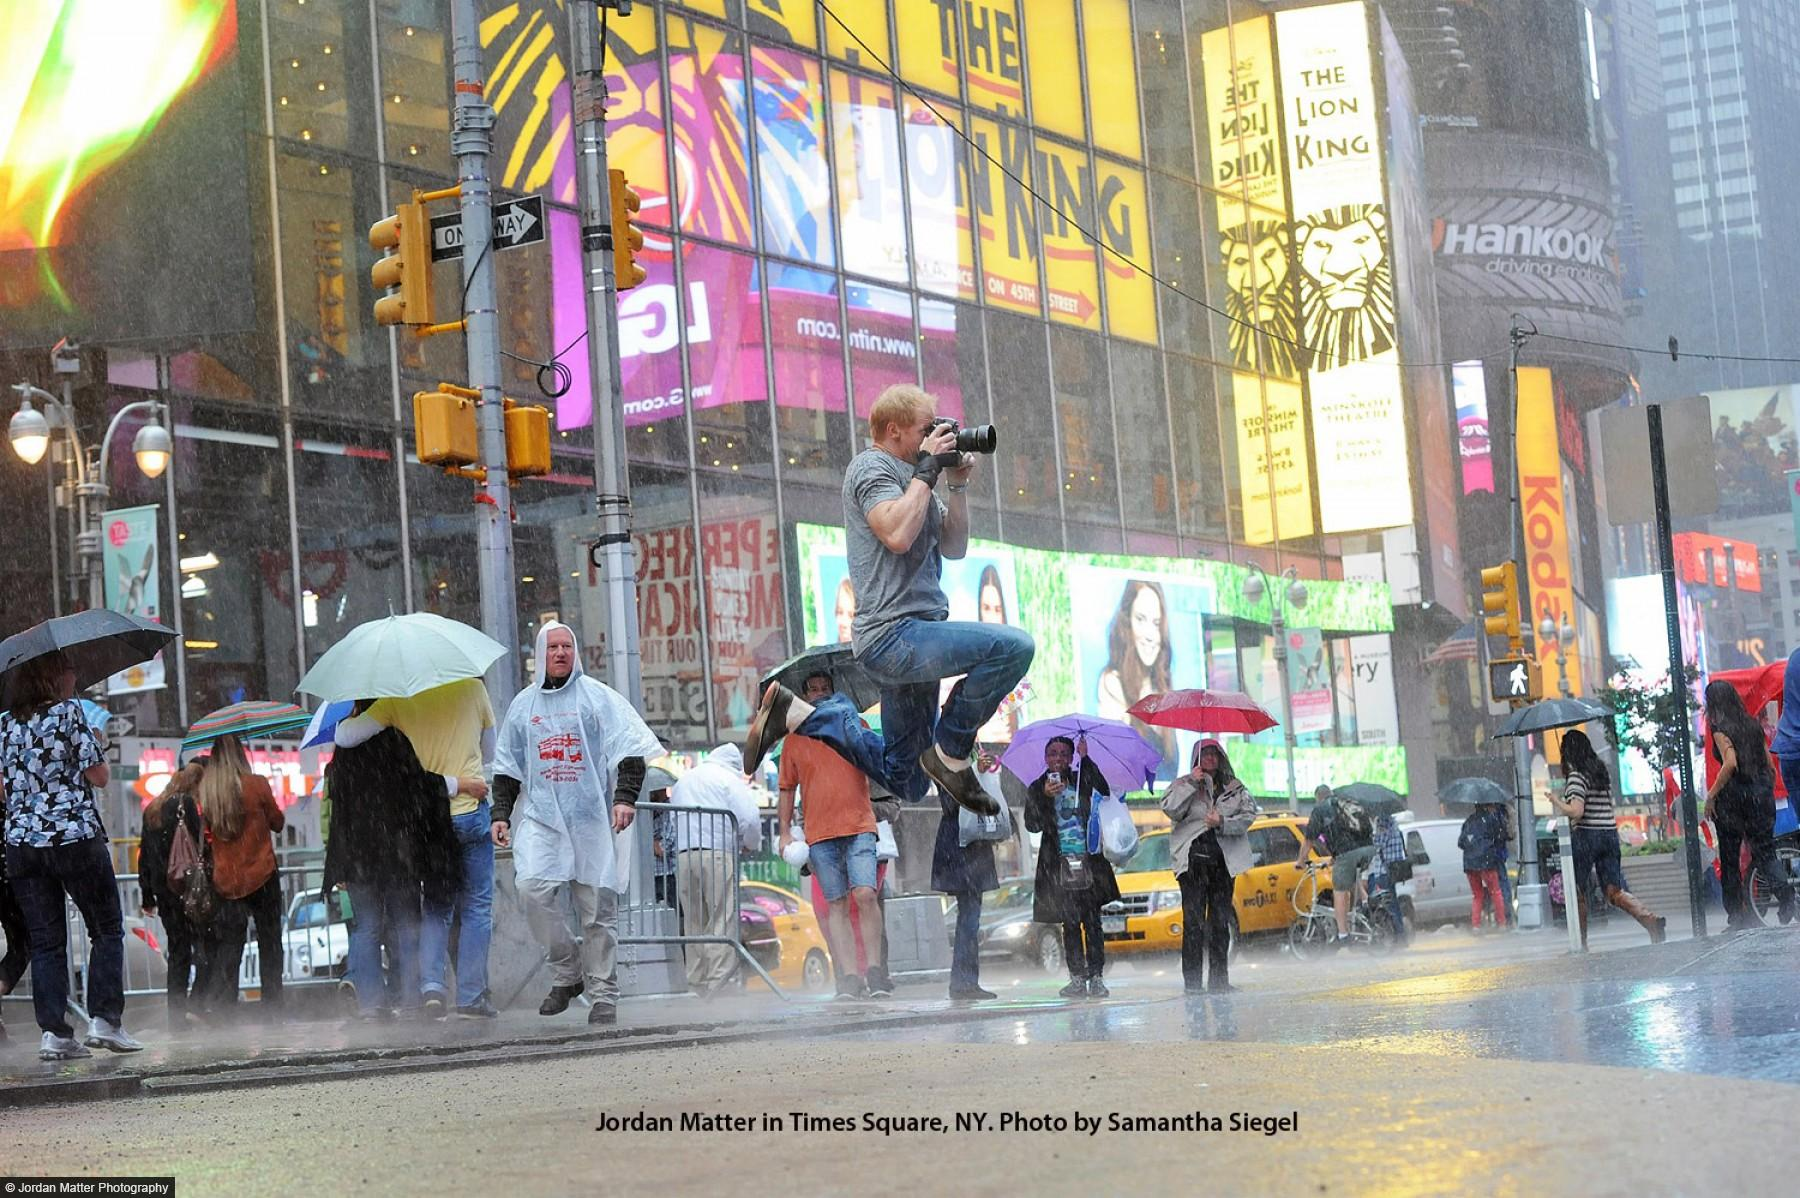 Author photo of Jordan Matter in Times Square by Samantha Siegel